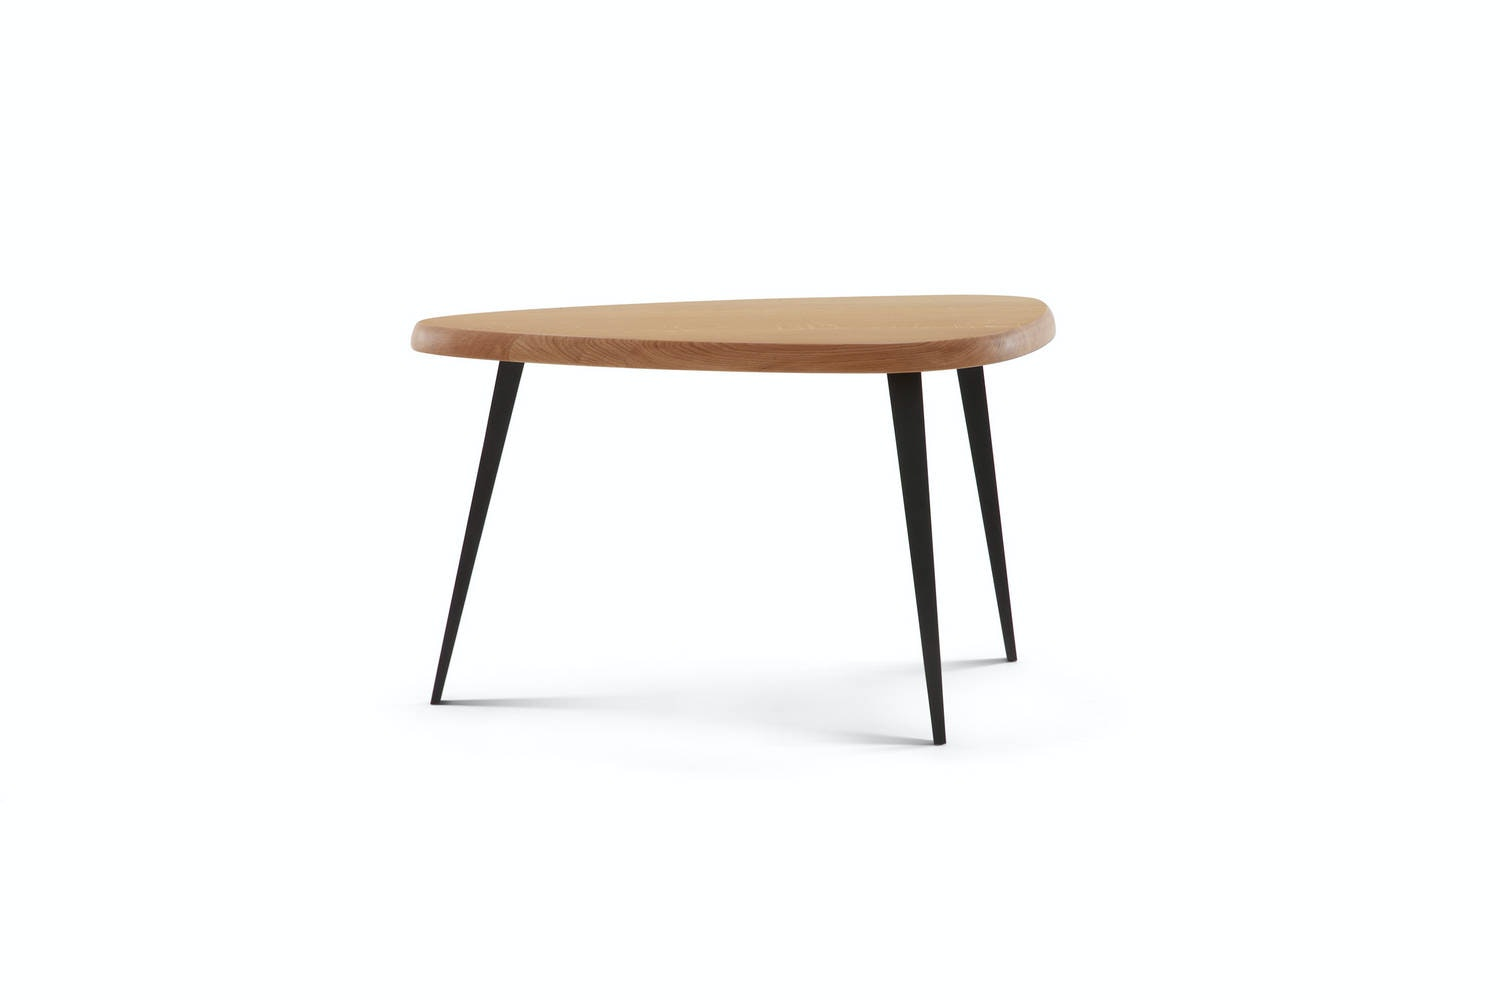 527 Mexique Table by Charlotte Perriand for Cassina